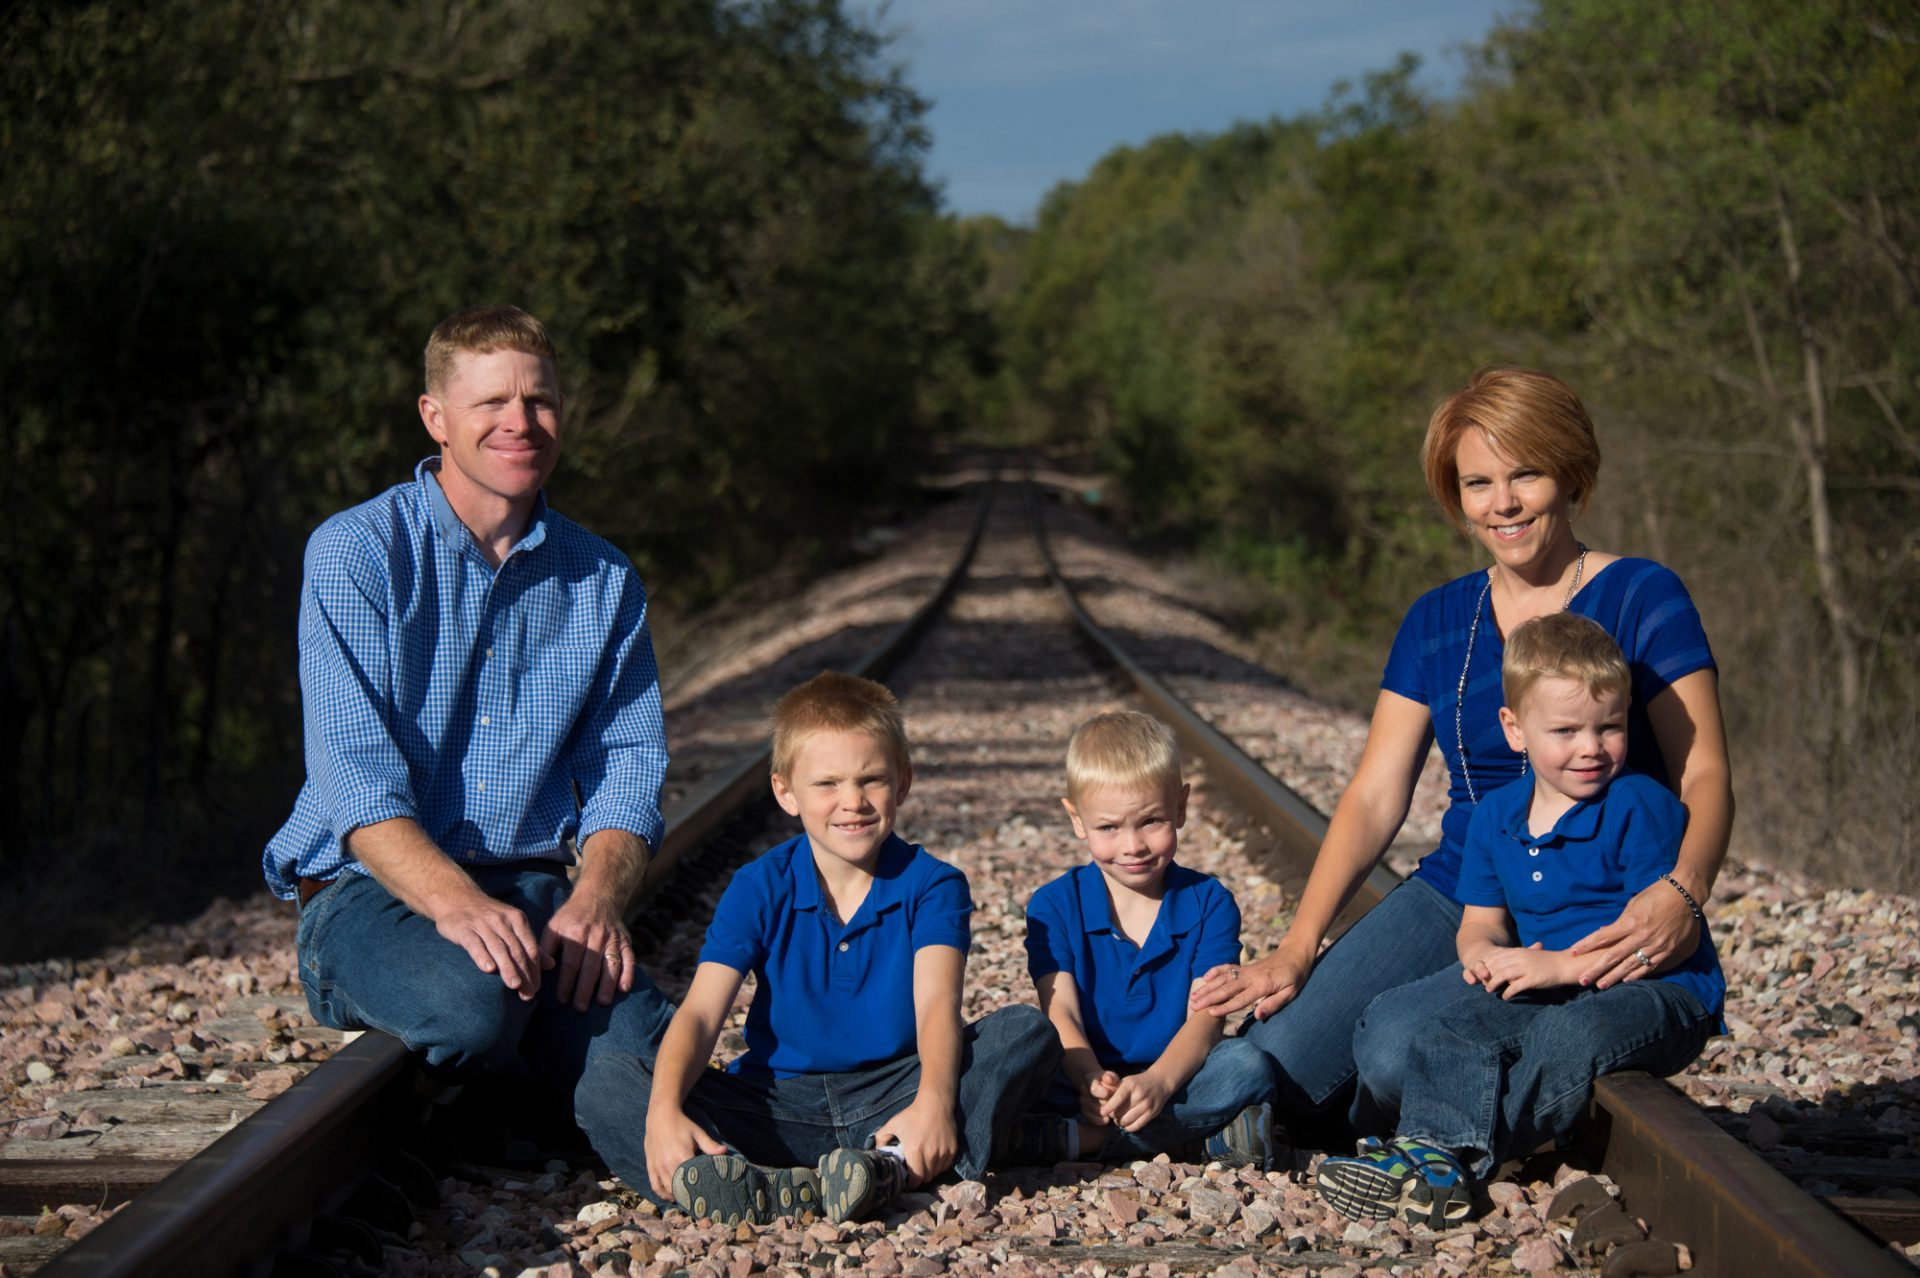 Photo: A family of five pose for a portrait on railroad tracks.